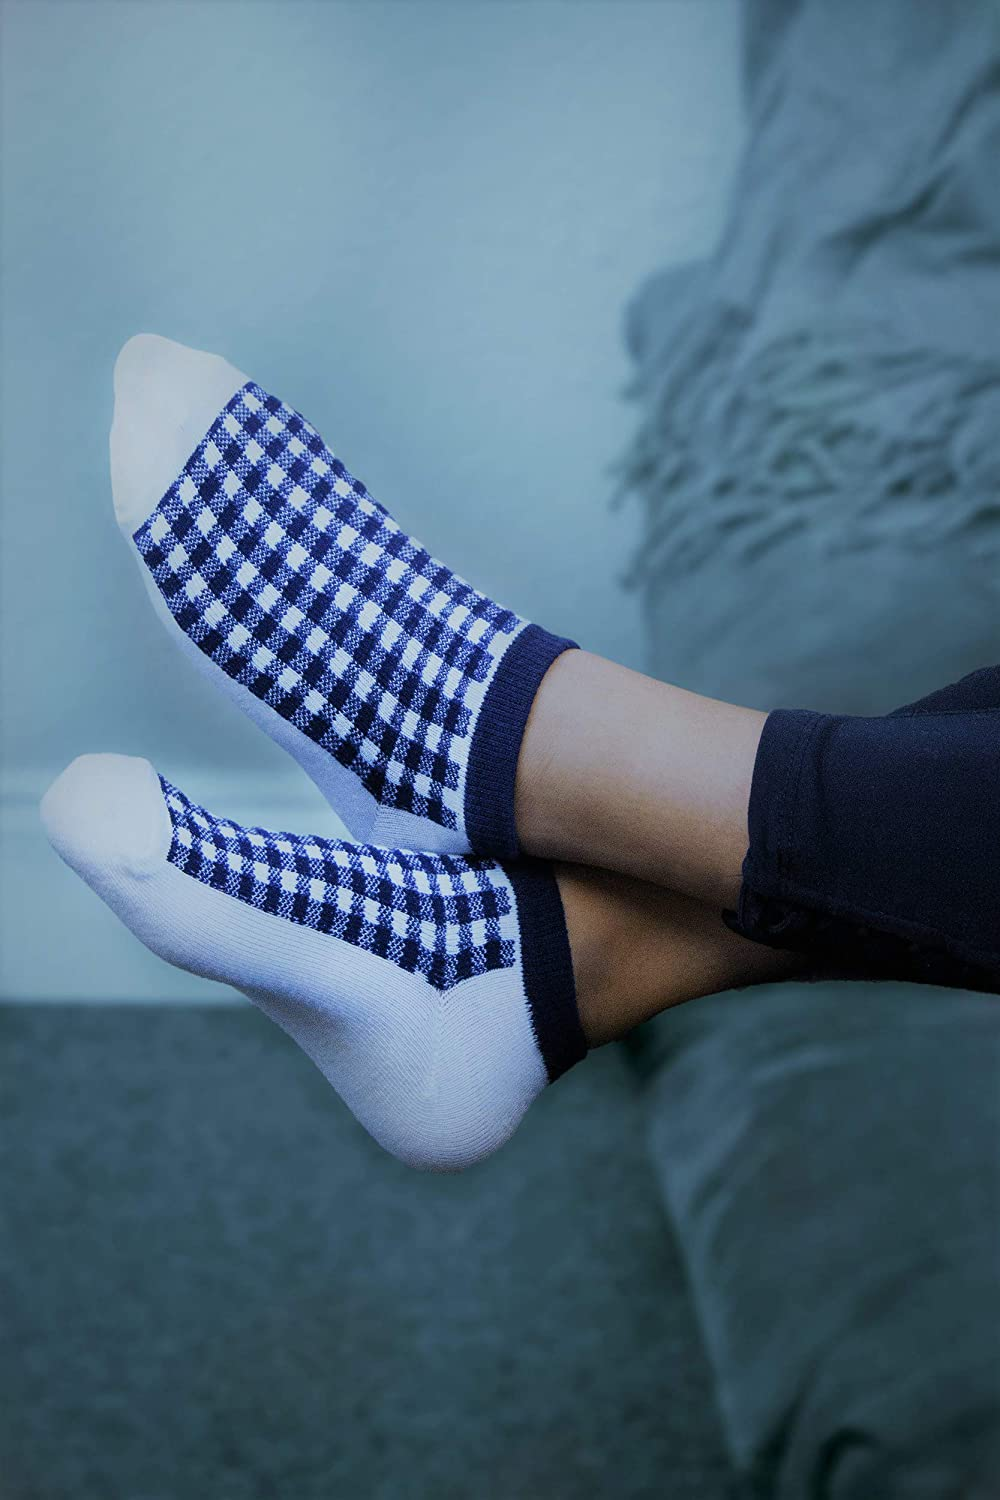 Women's Socks - Ankle Cut, Low Cut, No Show, Footie, Casual, Sport, Athletic Girls Socks in Colorful Patterns: Clothing